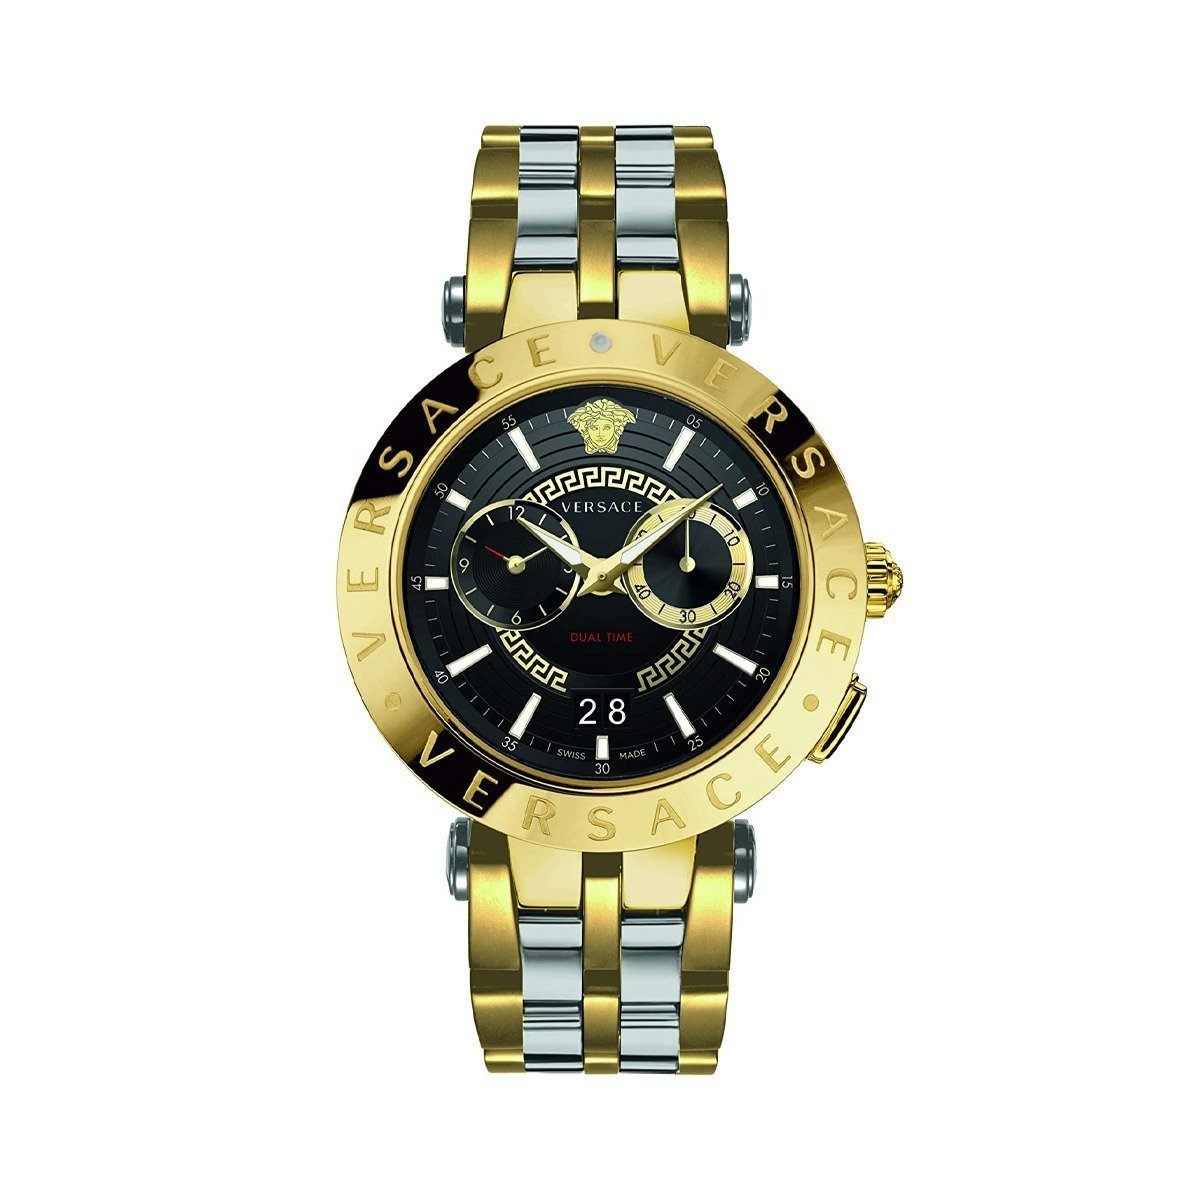 Versace V-Race GMT IP Gold - Watches & Crystals